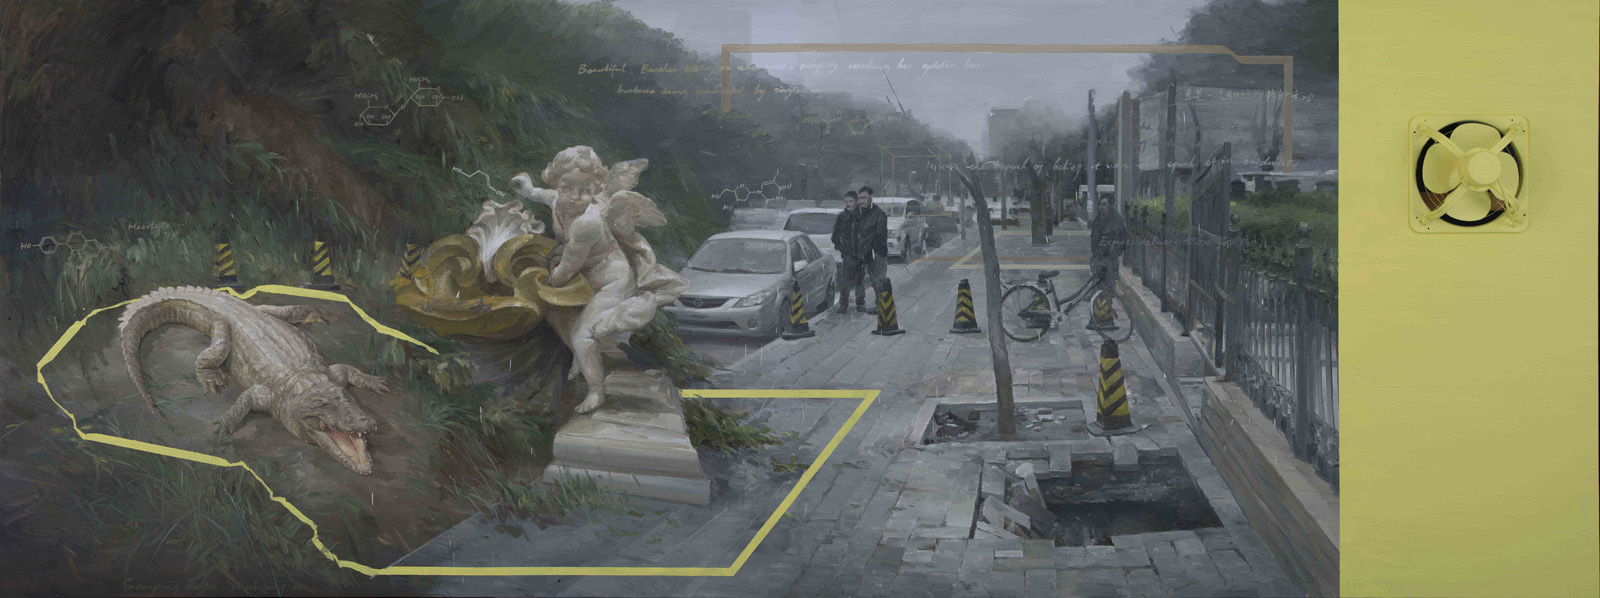 Yan Heng 闫珩, Shenyang Forest 沈阳森林, 2013-14, Mixed media and oil on canvas 布面油画装置, 150 x 400 cm